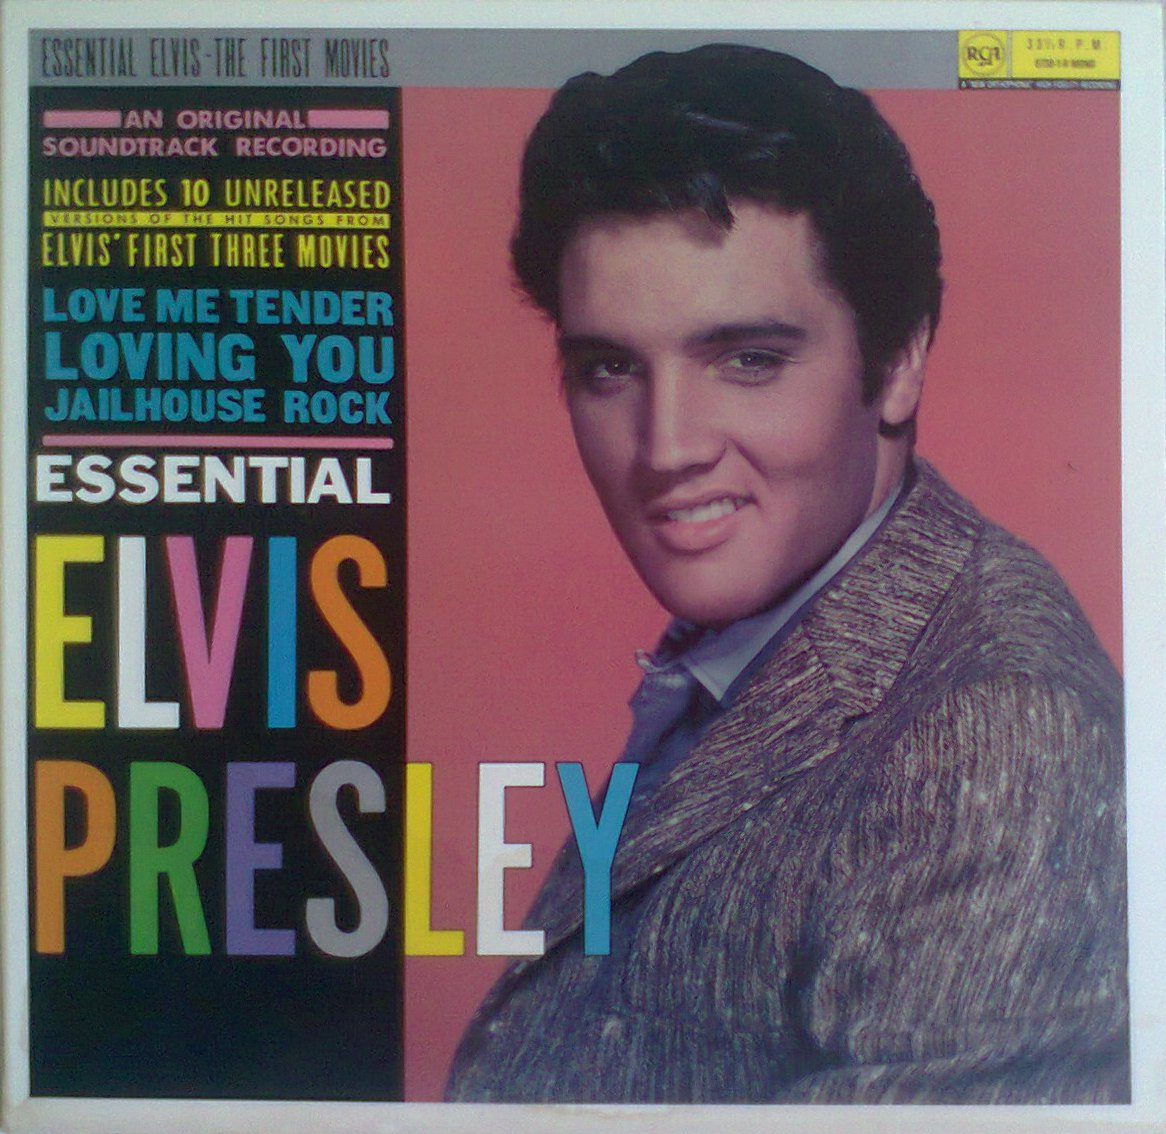 ESSENTIAL ELVIS - THE FIRST MOVIES Foto0275rfuo9